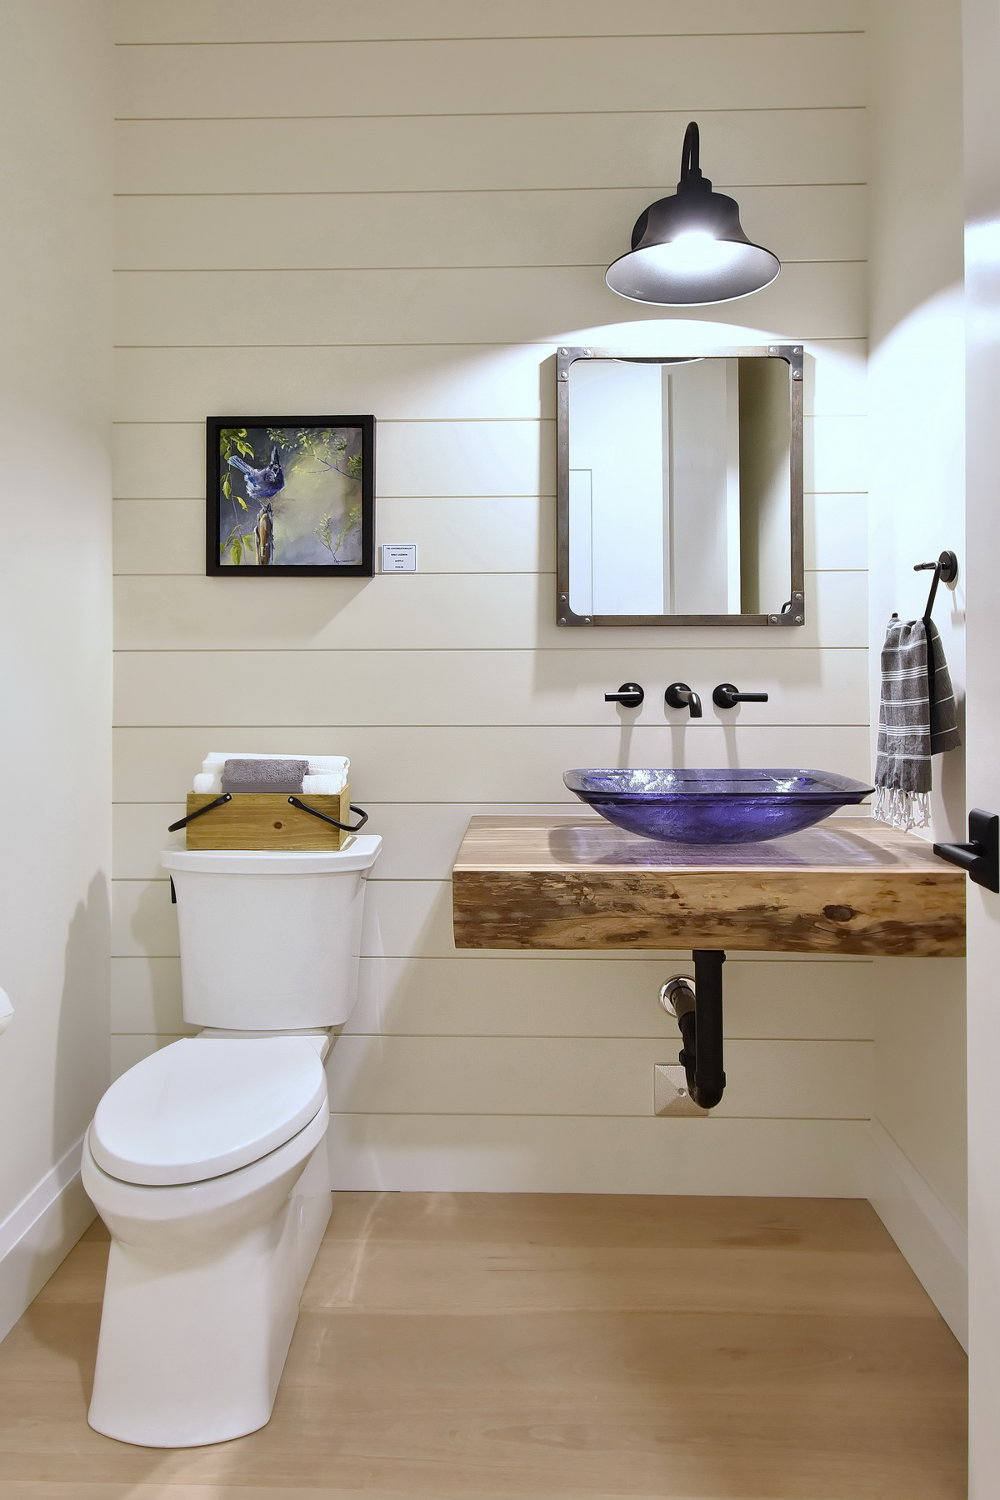 Half Bathroom with Corbelle toilet & Floating Vanity